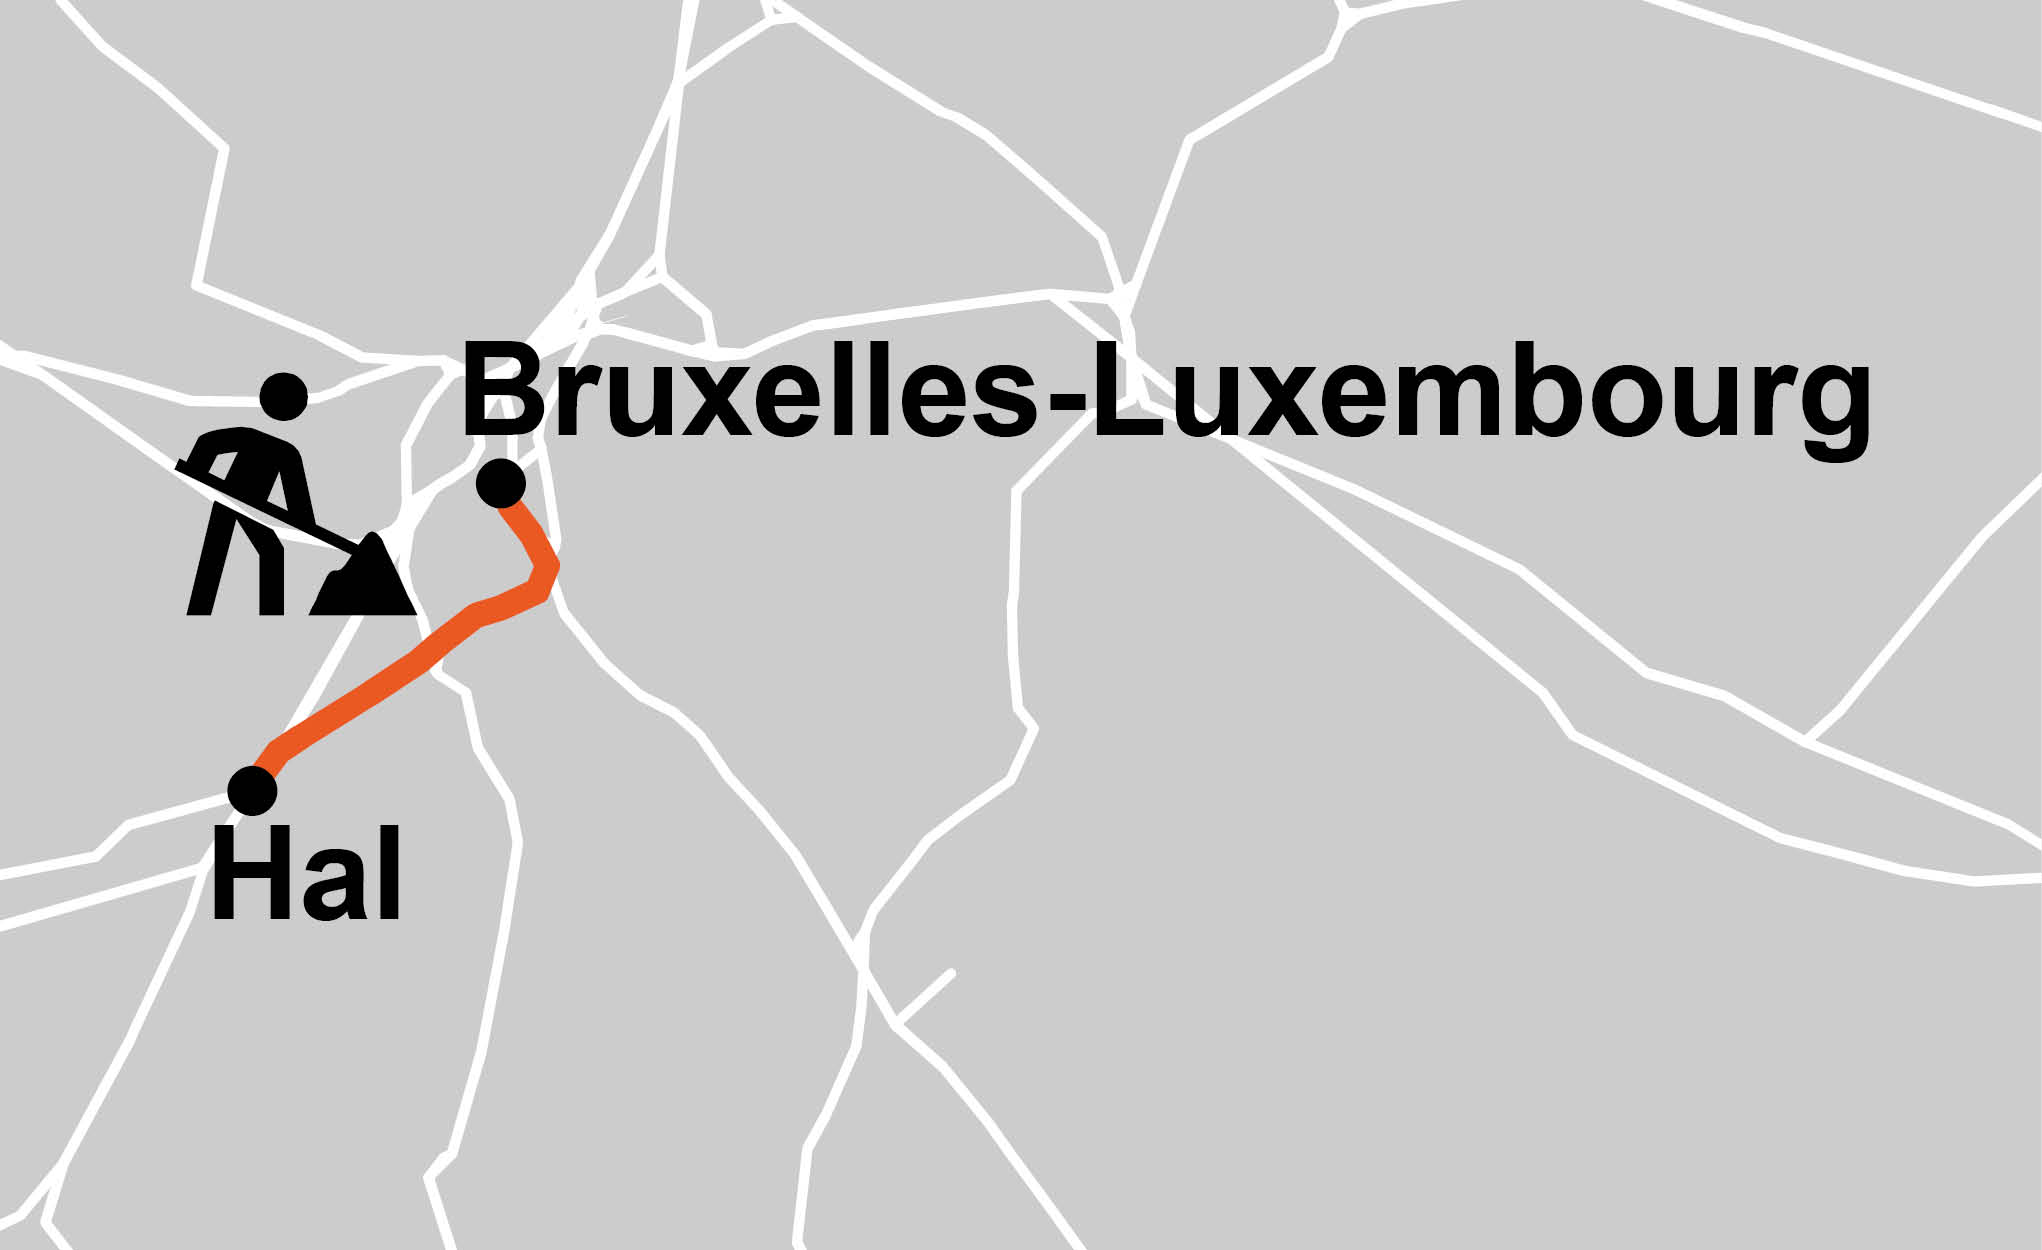 Carte Bruxelles-Luxembourg - Hal